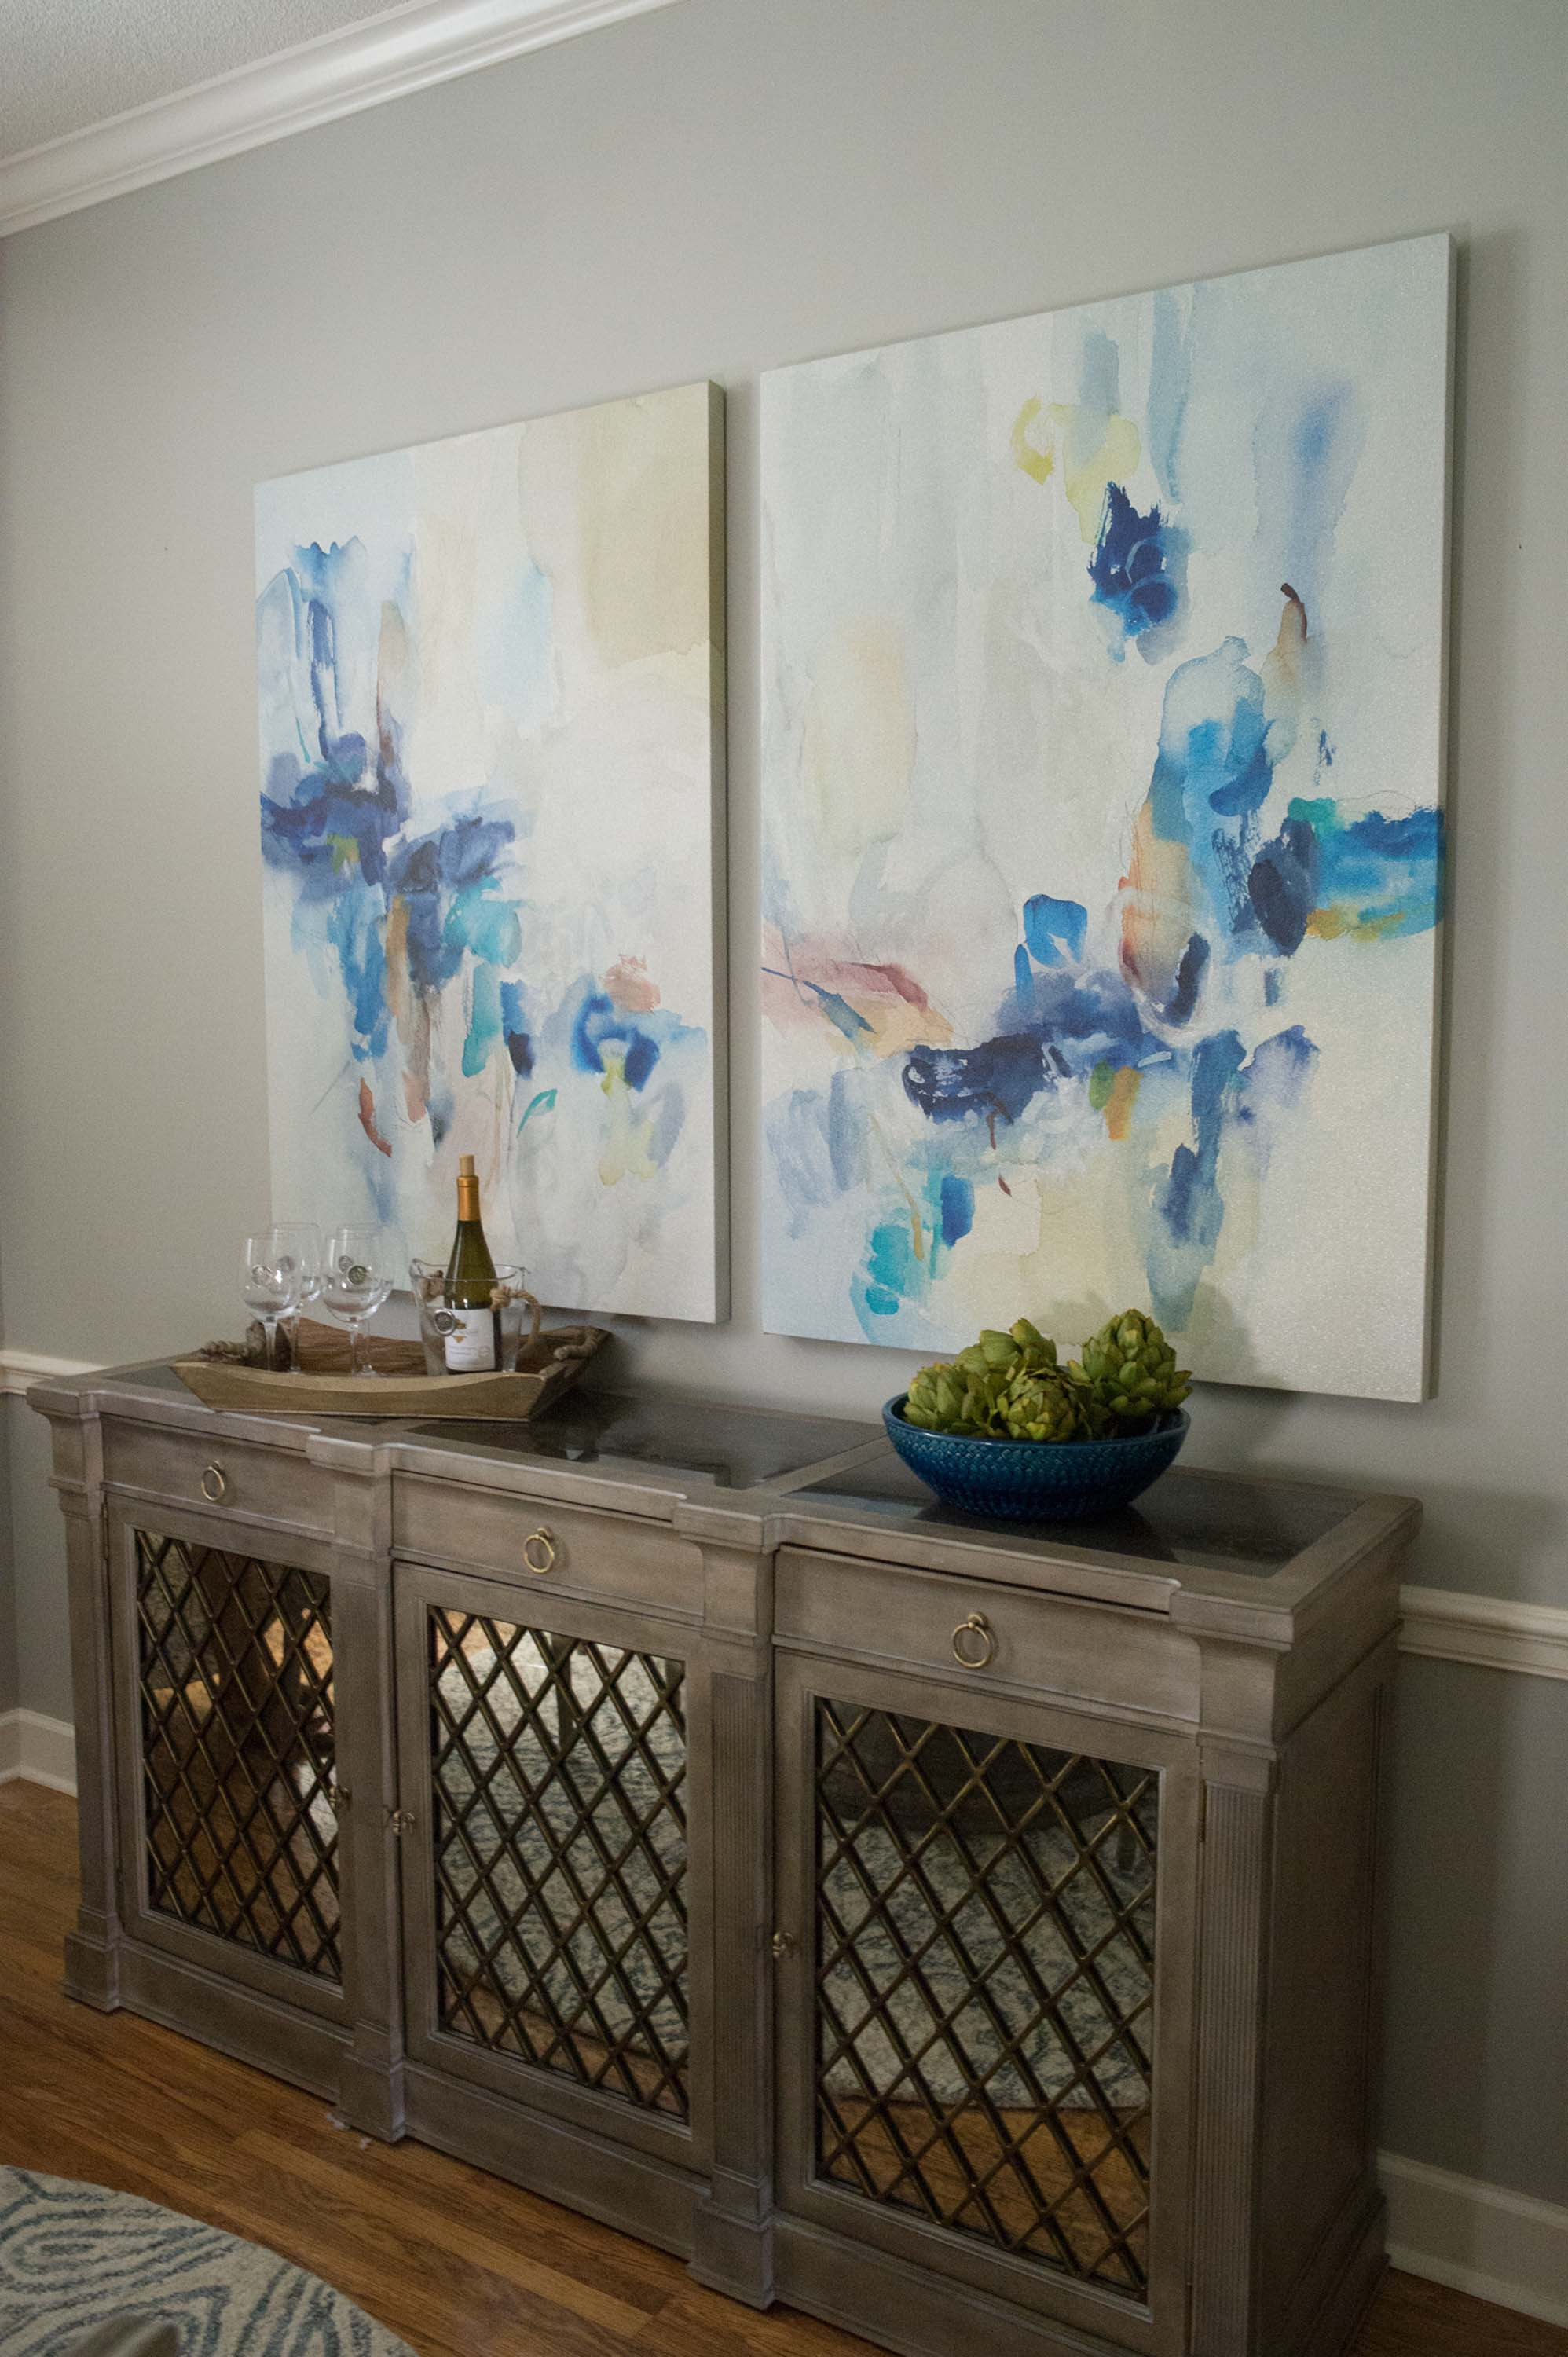 Dining Room Buffet with Artwork, Wine Glasses & Artichokes